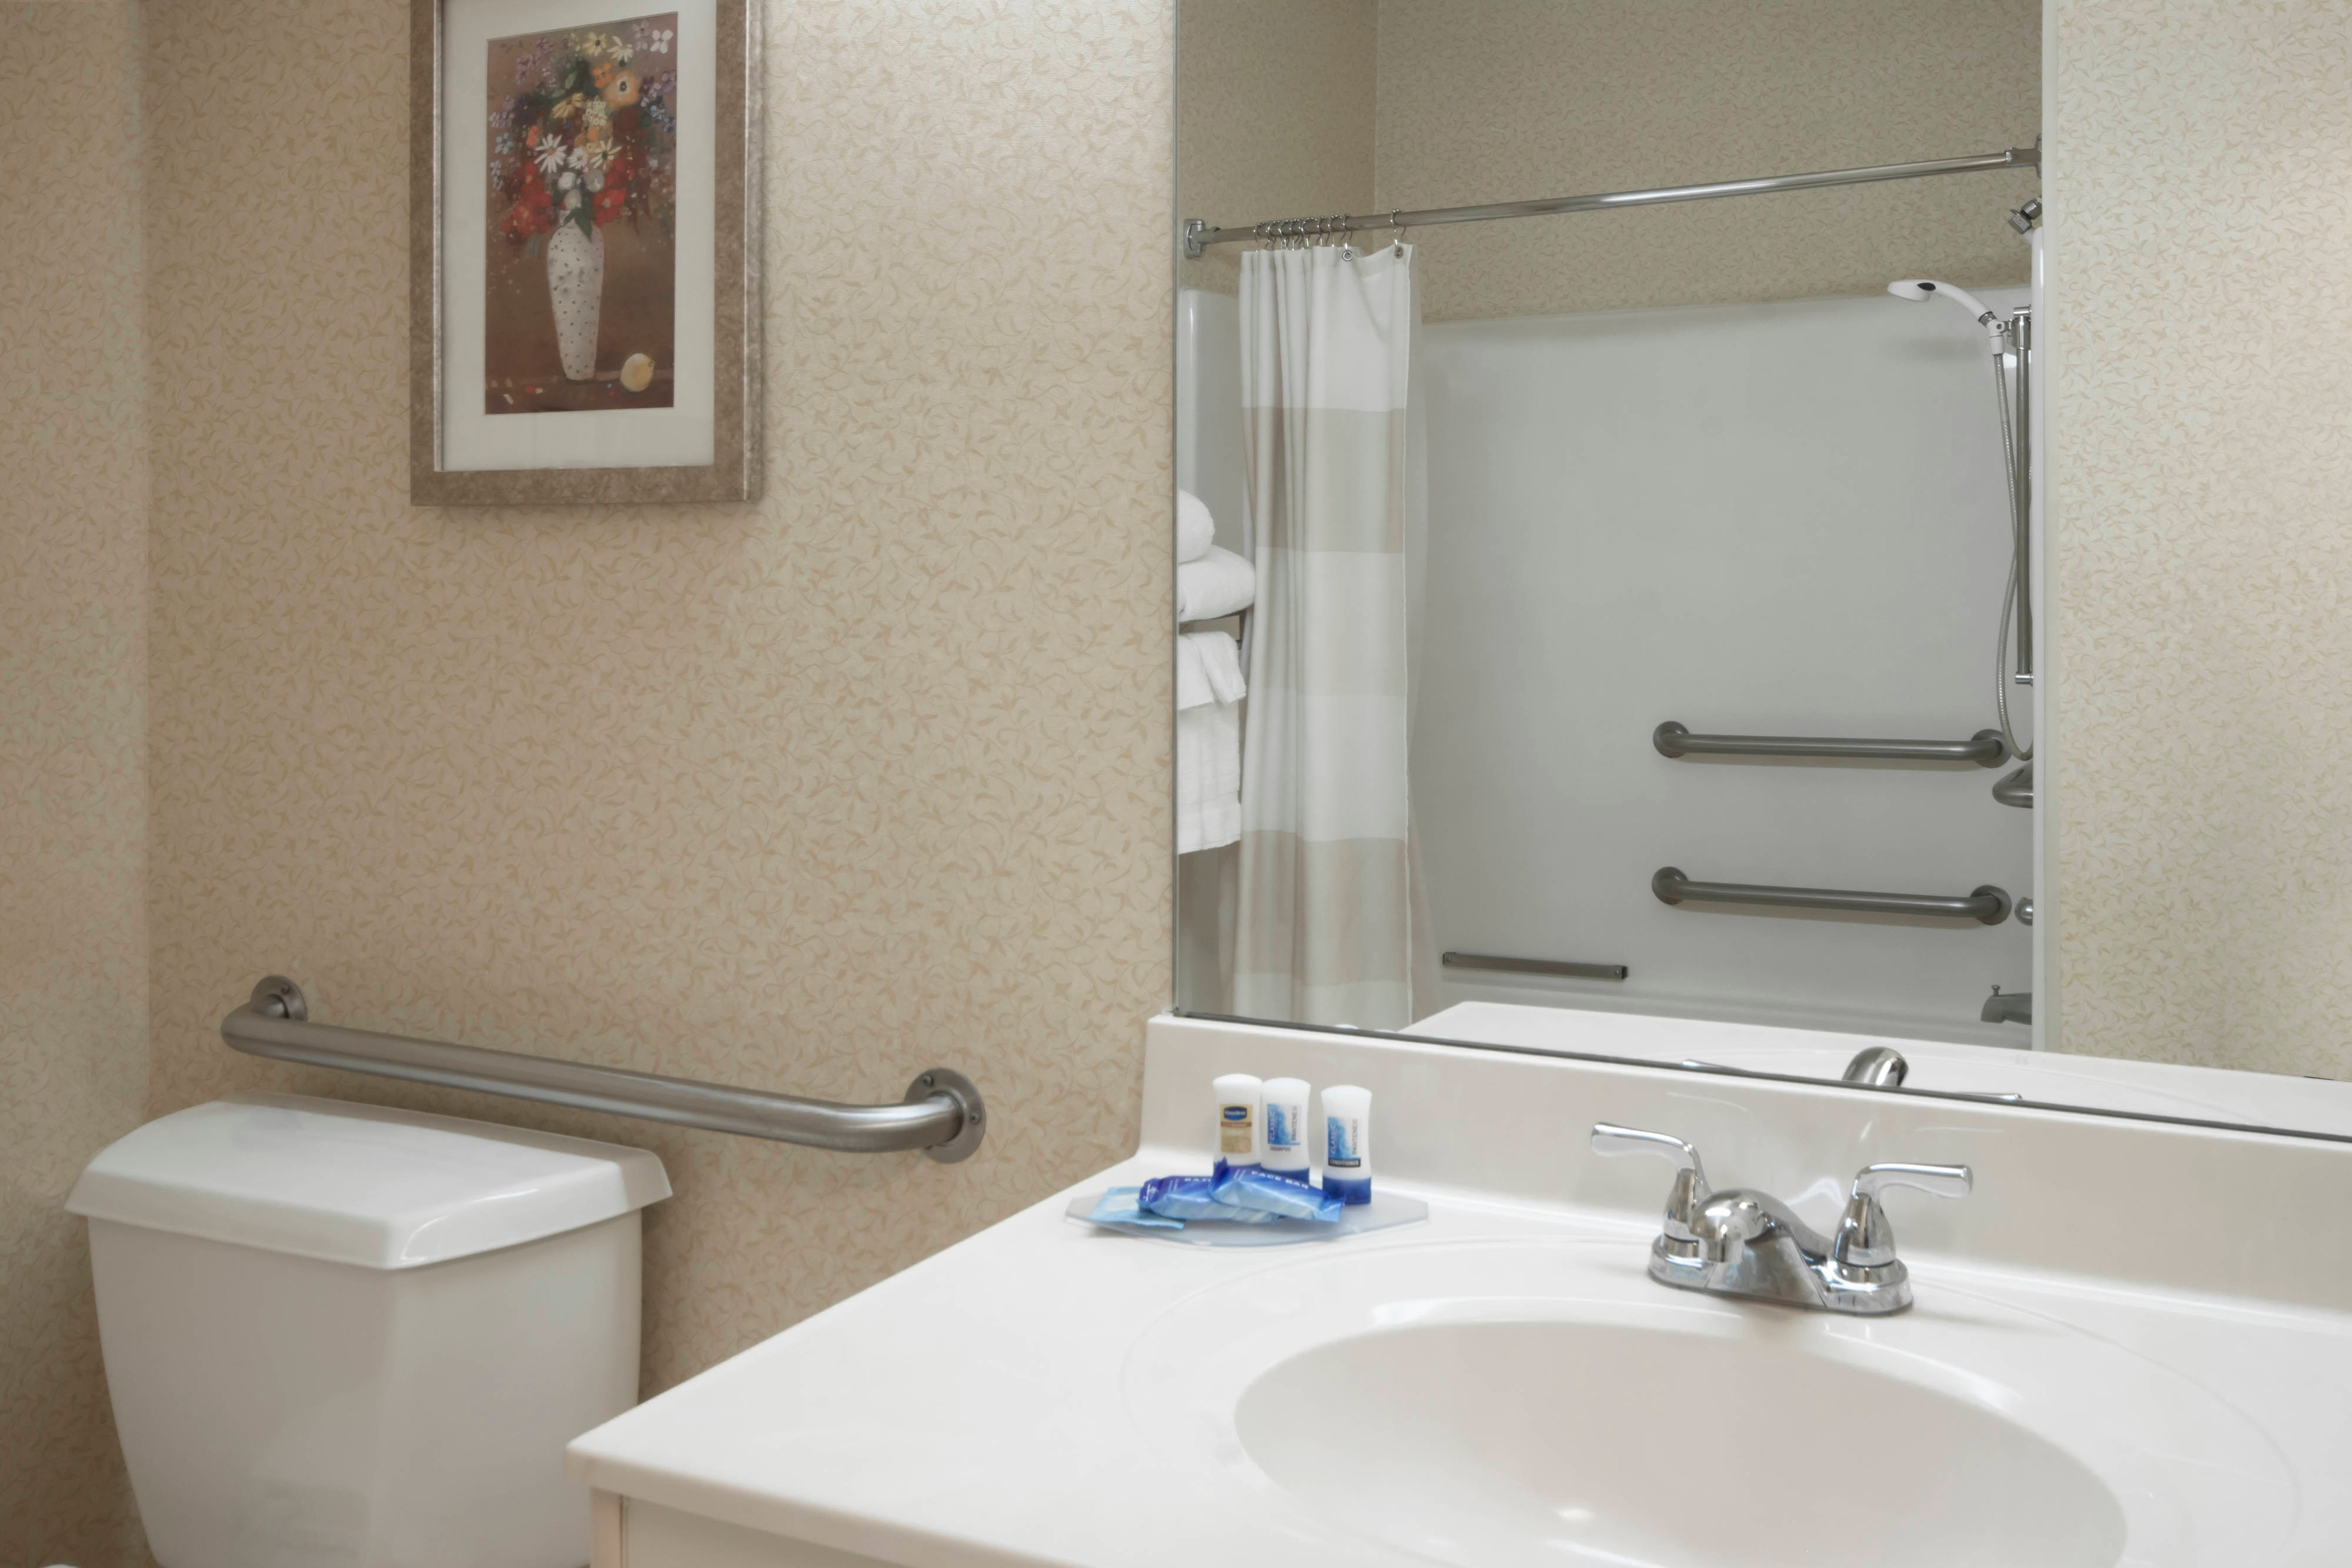 Coon Rapids Hotel Accessible Bathroom